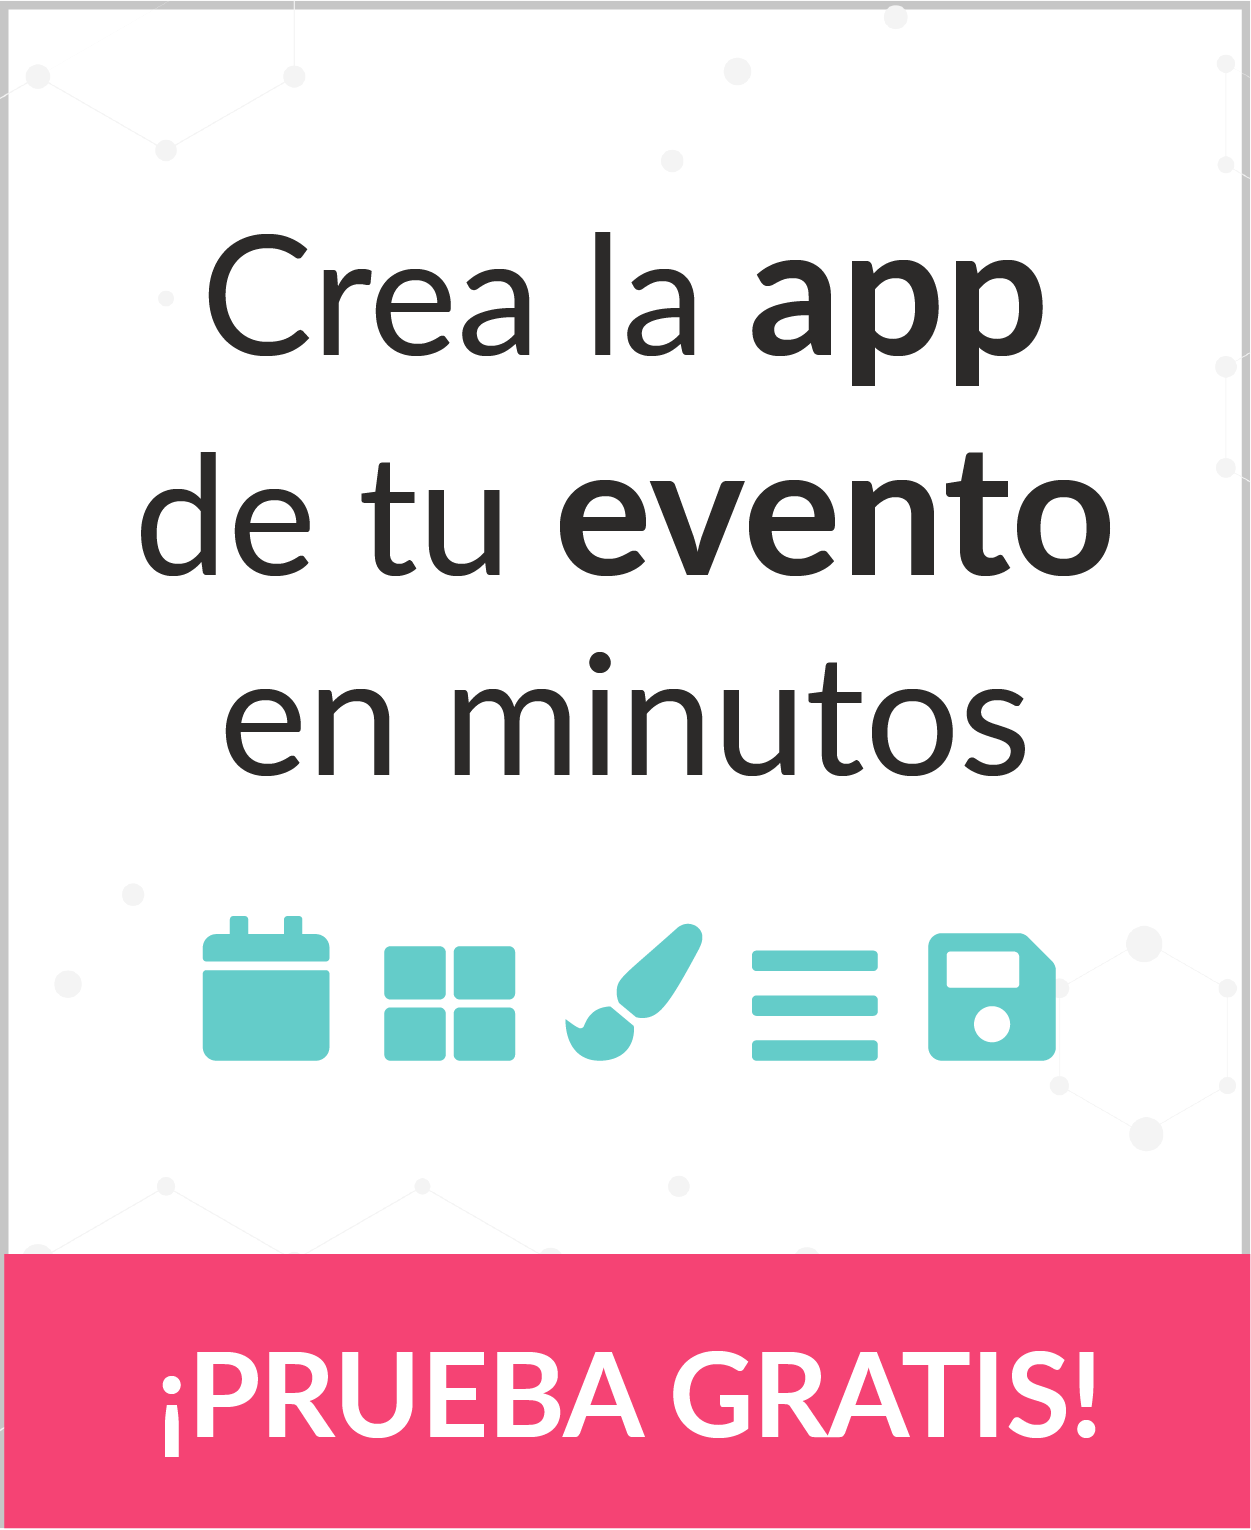 Eventool - Crea la app de tu evento en minutos